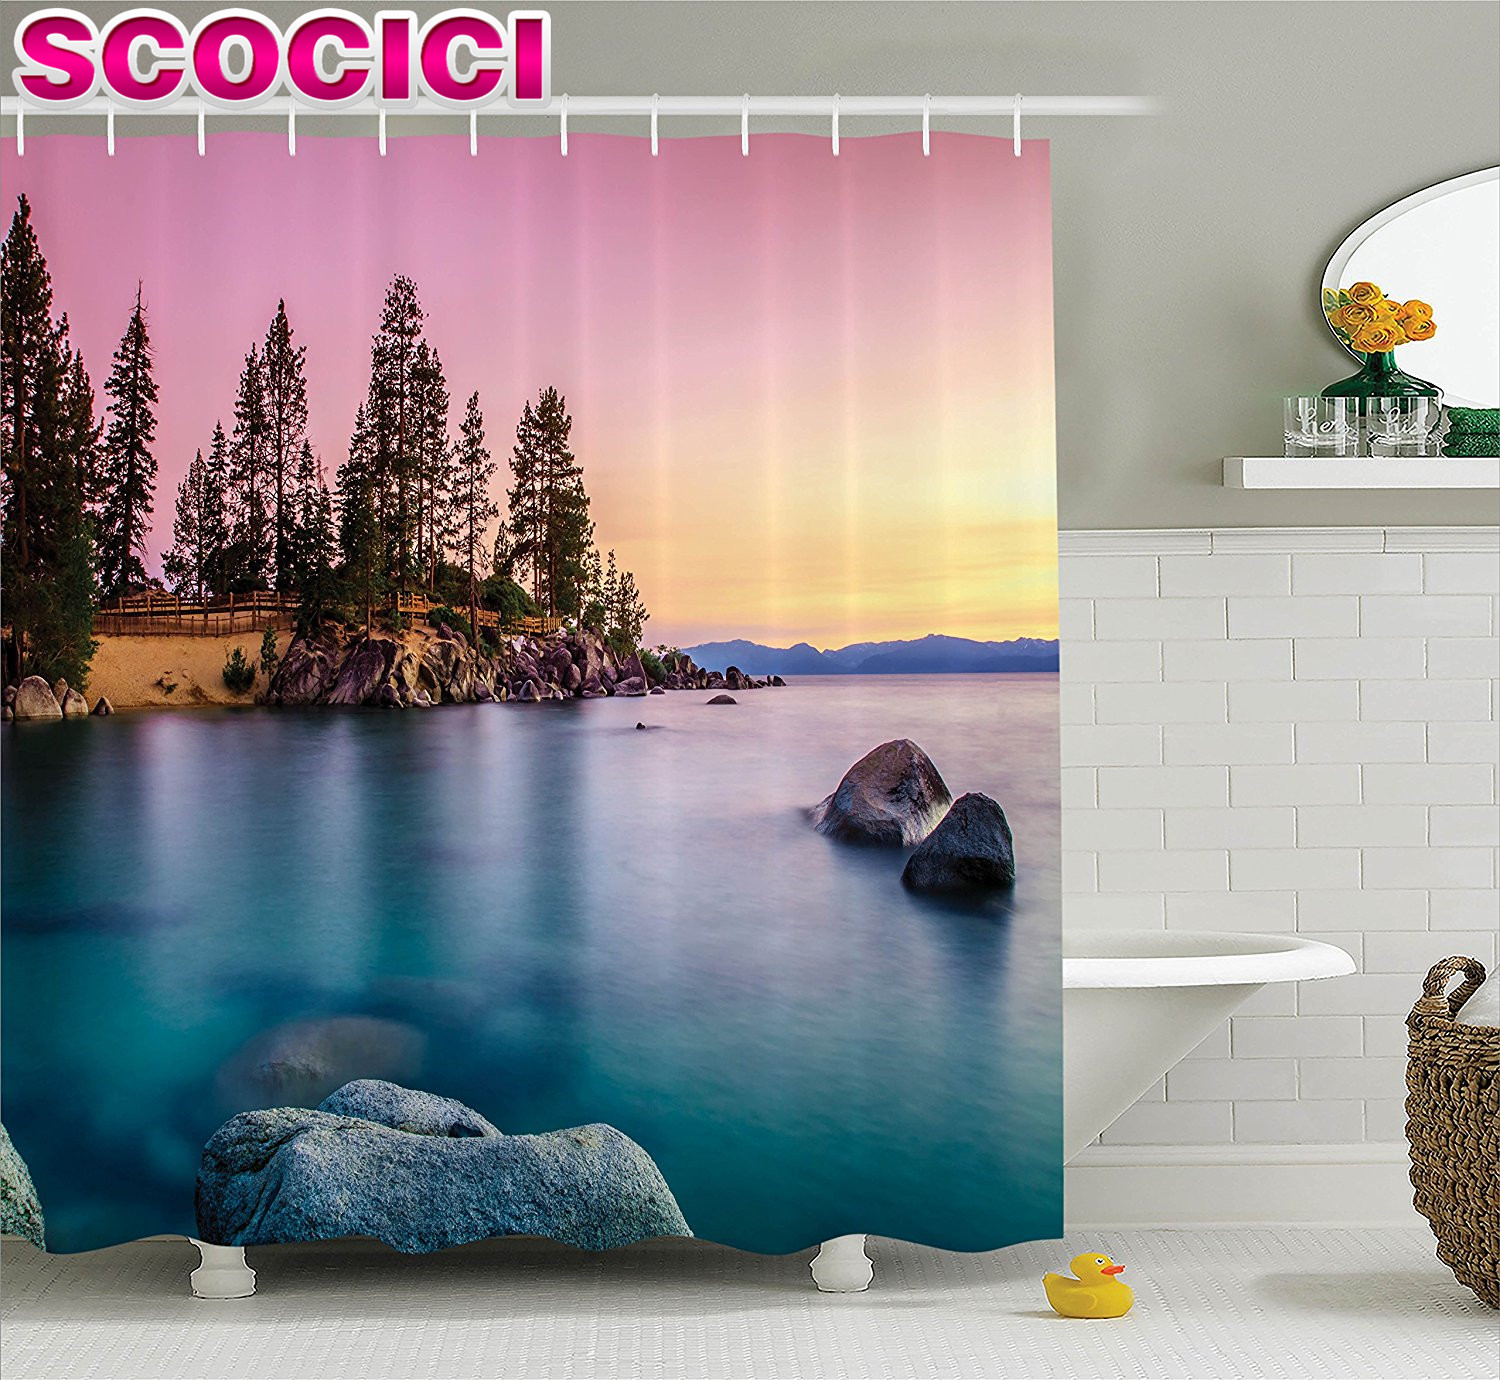 lake house decor shower curtain set trees on the alley and stones in the lake nature inspired rest home decor bathr